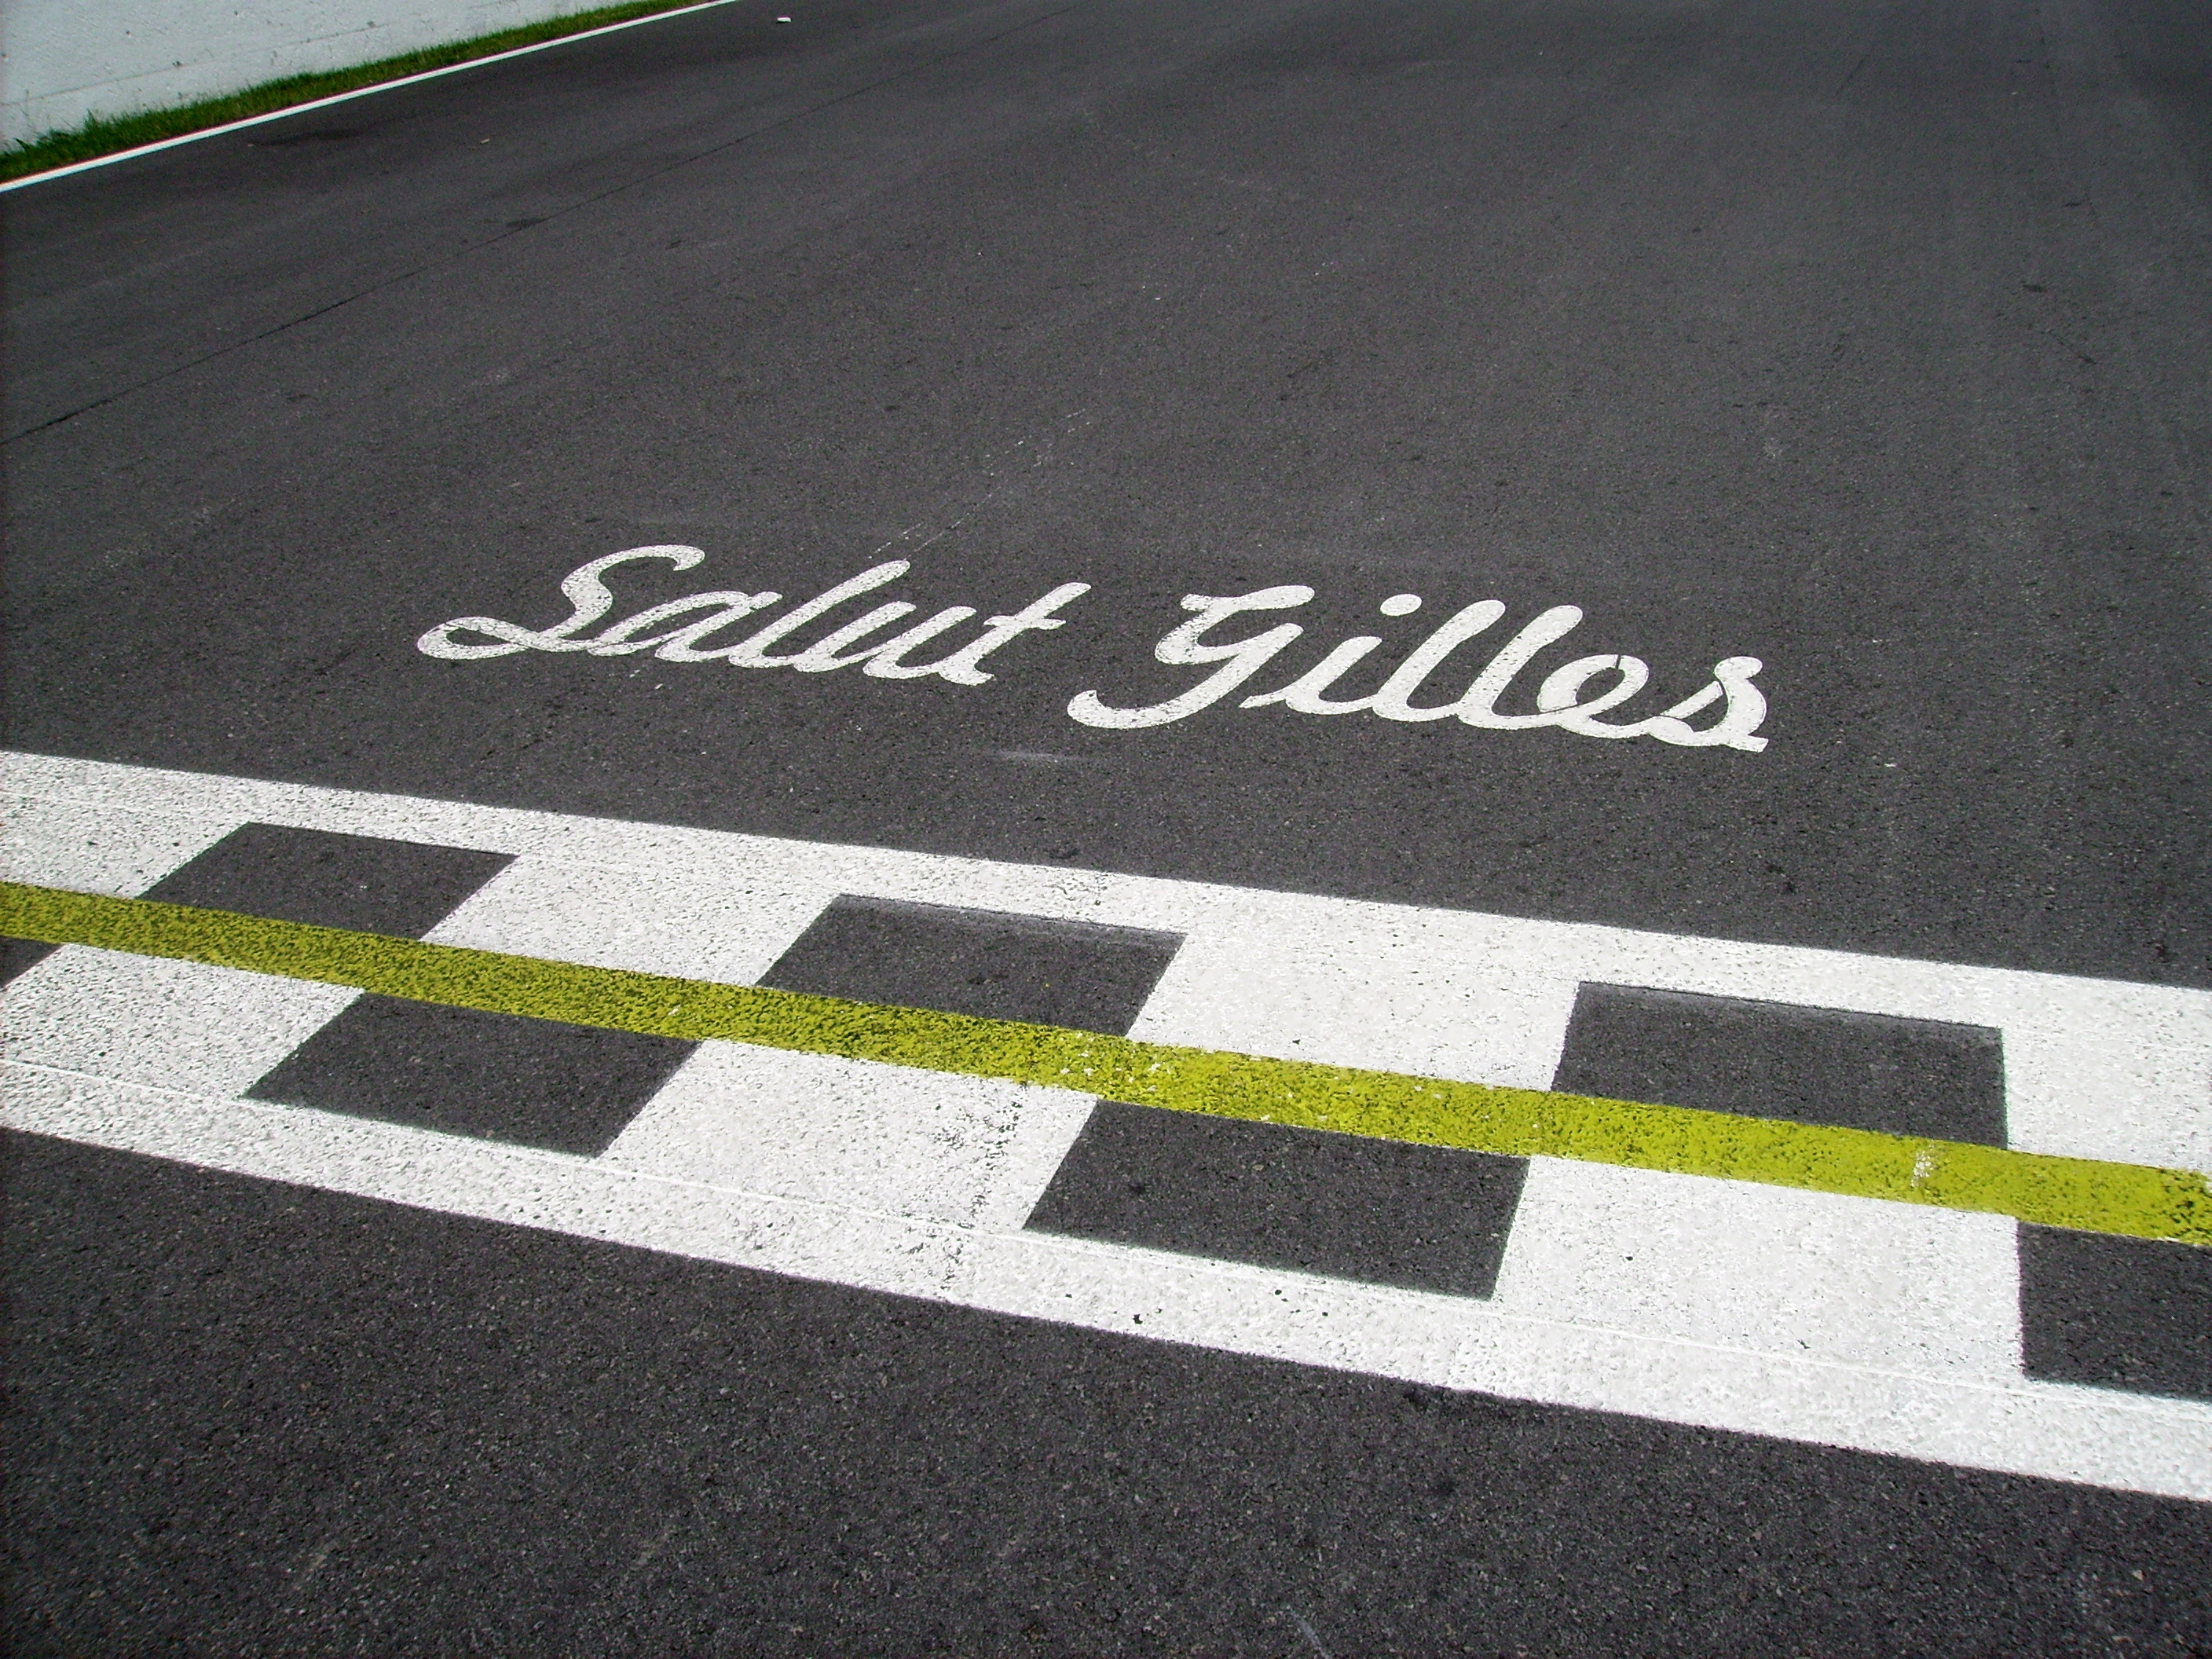 https://upload.wikimedia.org/wikipedia/commons/2/22/Circuit_Gilles_Villeneuve_MAM2.JPG